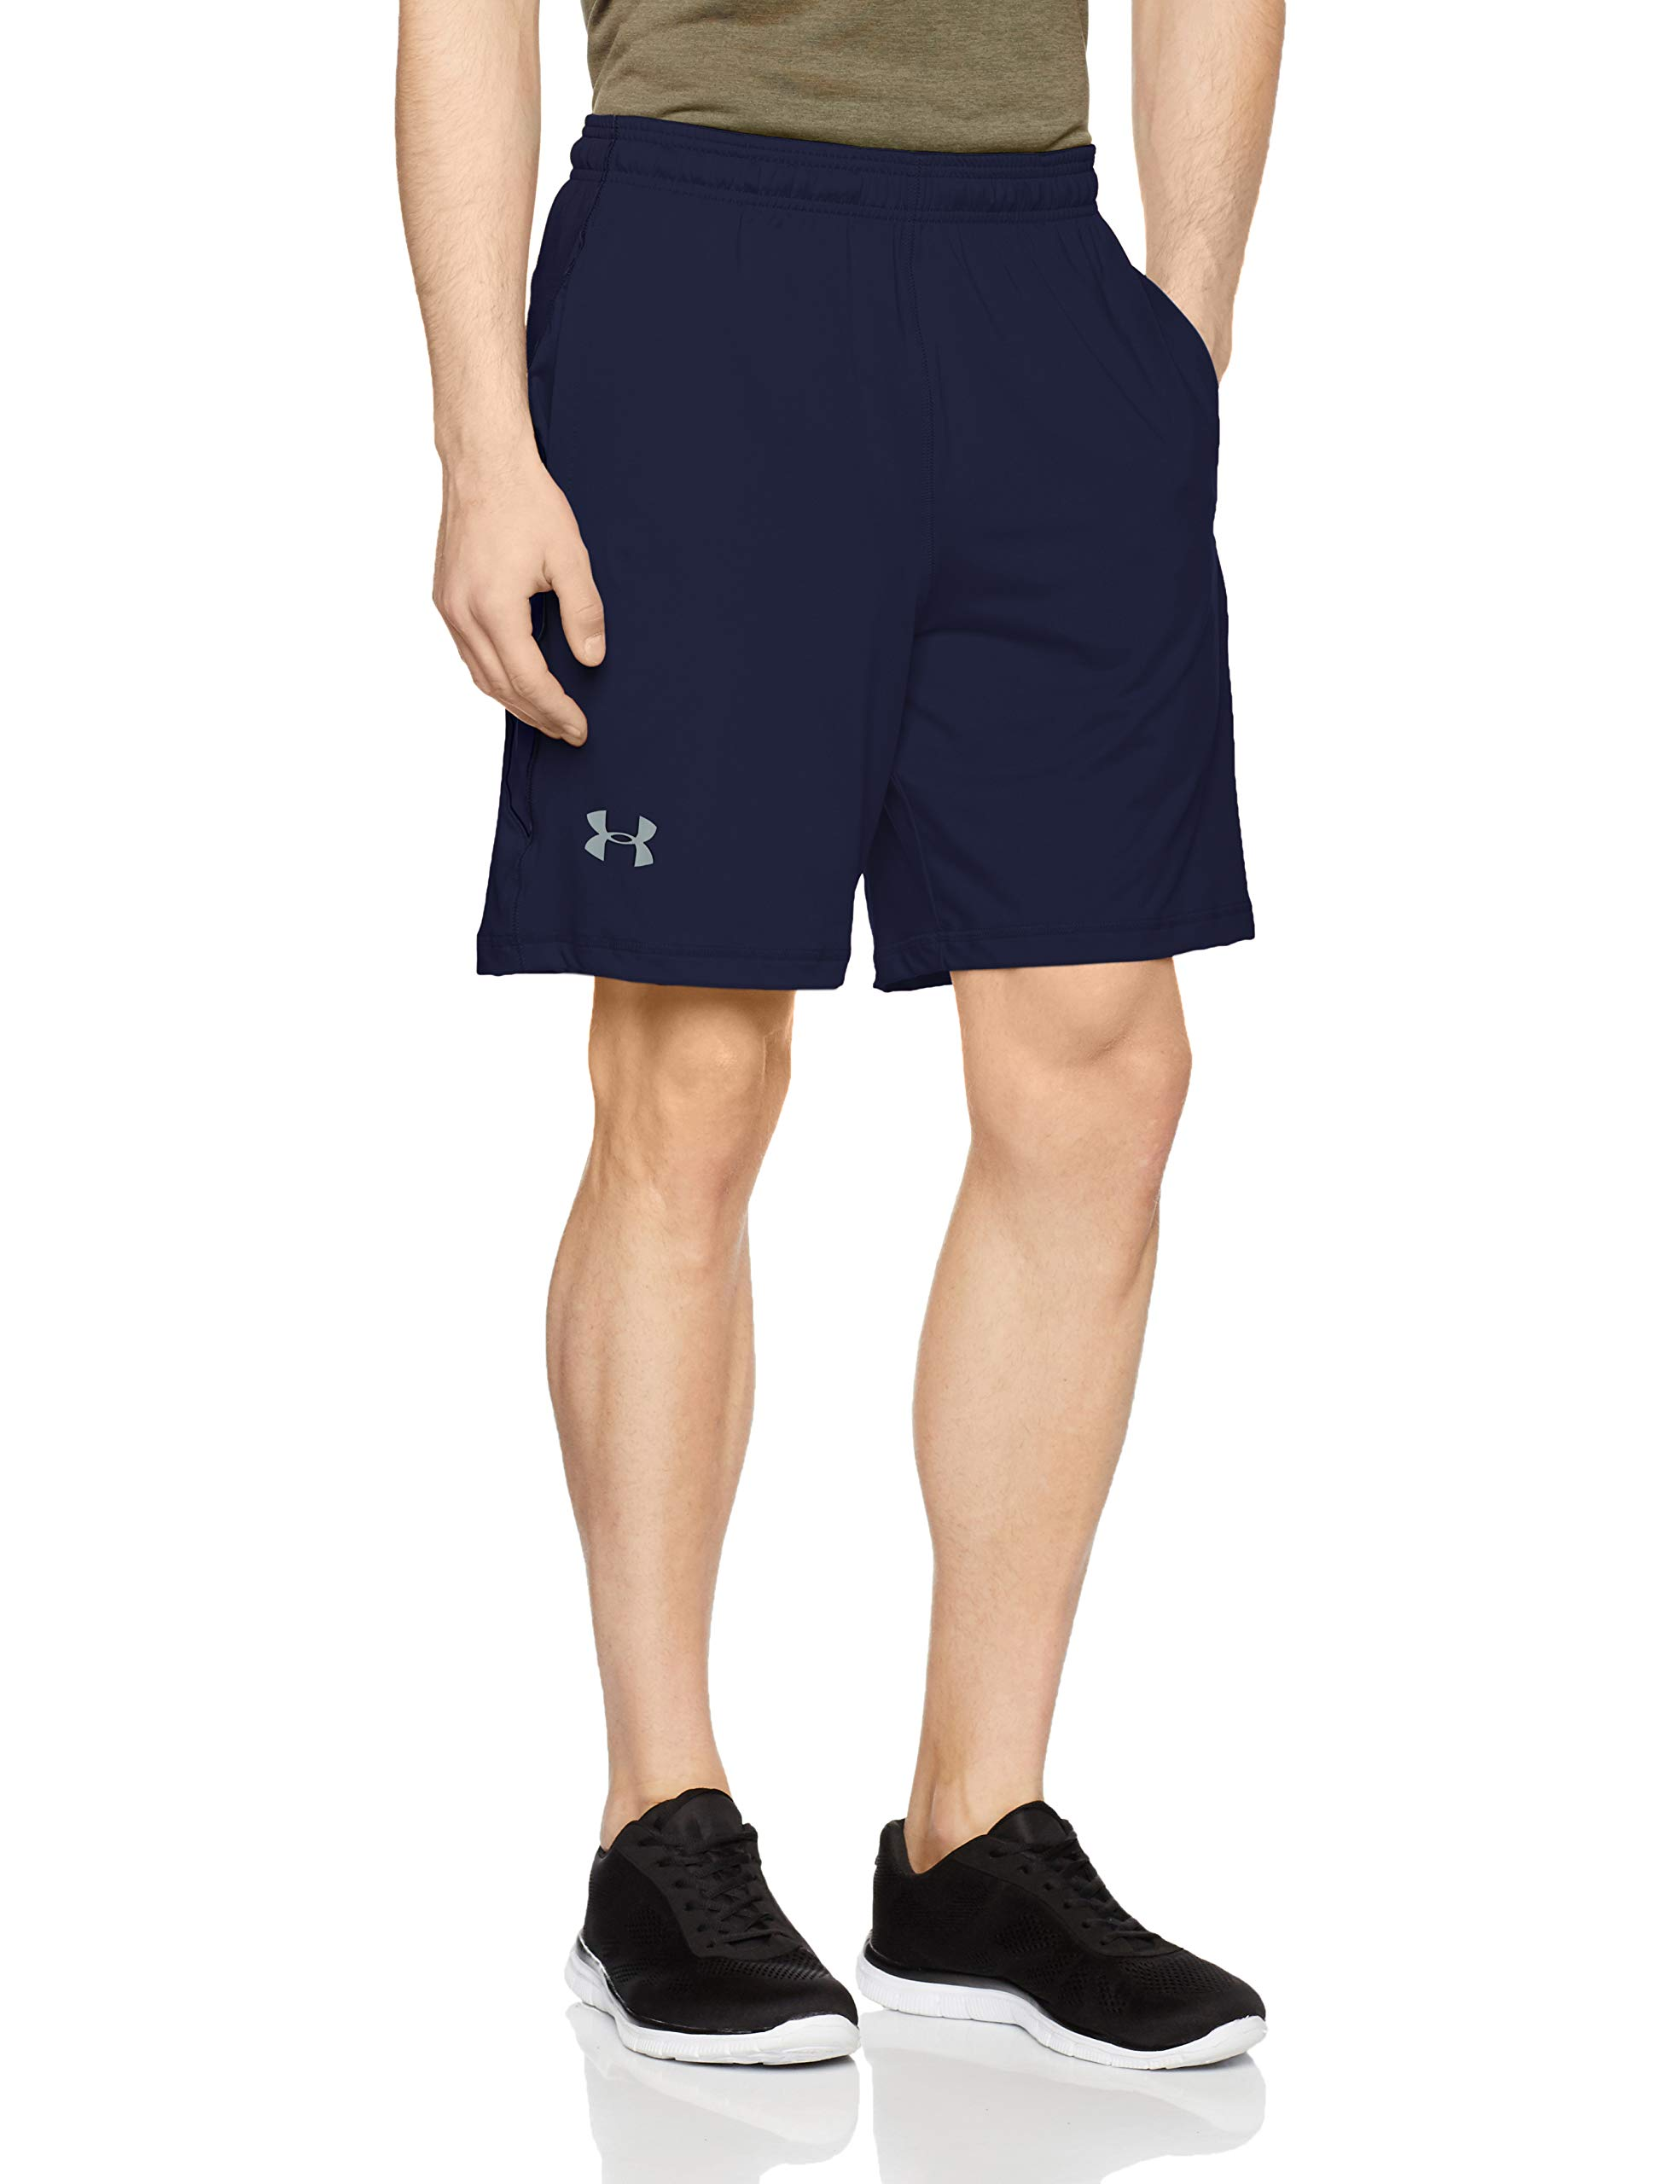 Loose Sports Shorts with 4-Way Stretch Fabric Under Armour Mens Ua Raid 8 Shorts Ultralight /& Fast-Drying Workout Shorts for Men